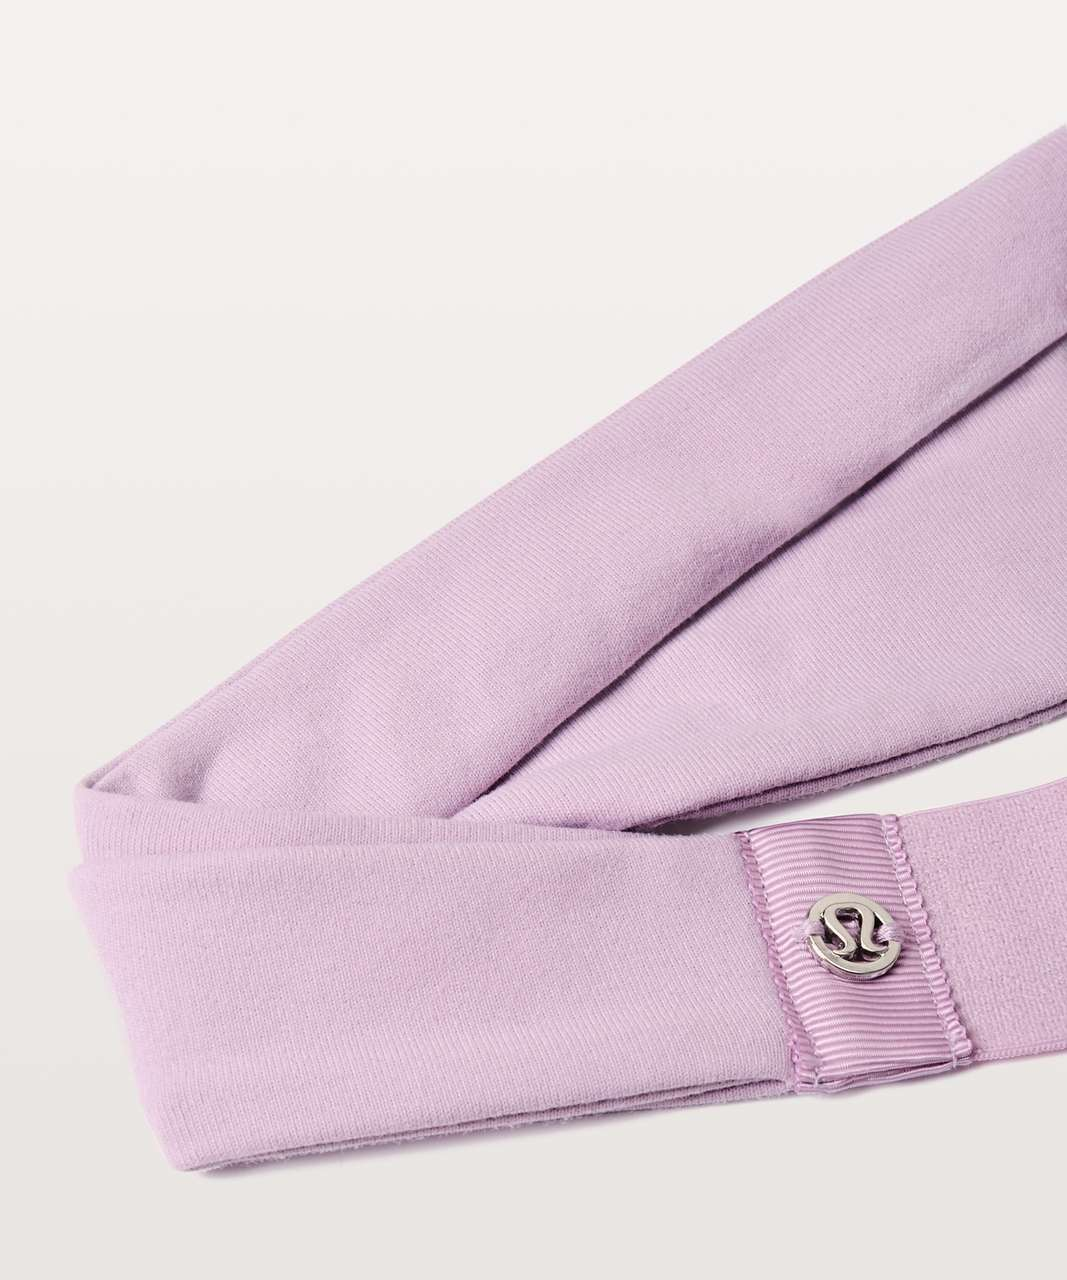 Lululemon Fringe Fighter Headband - Lilac Quartz